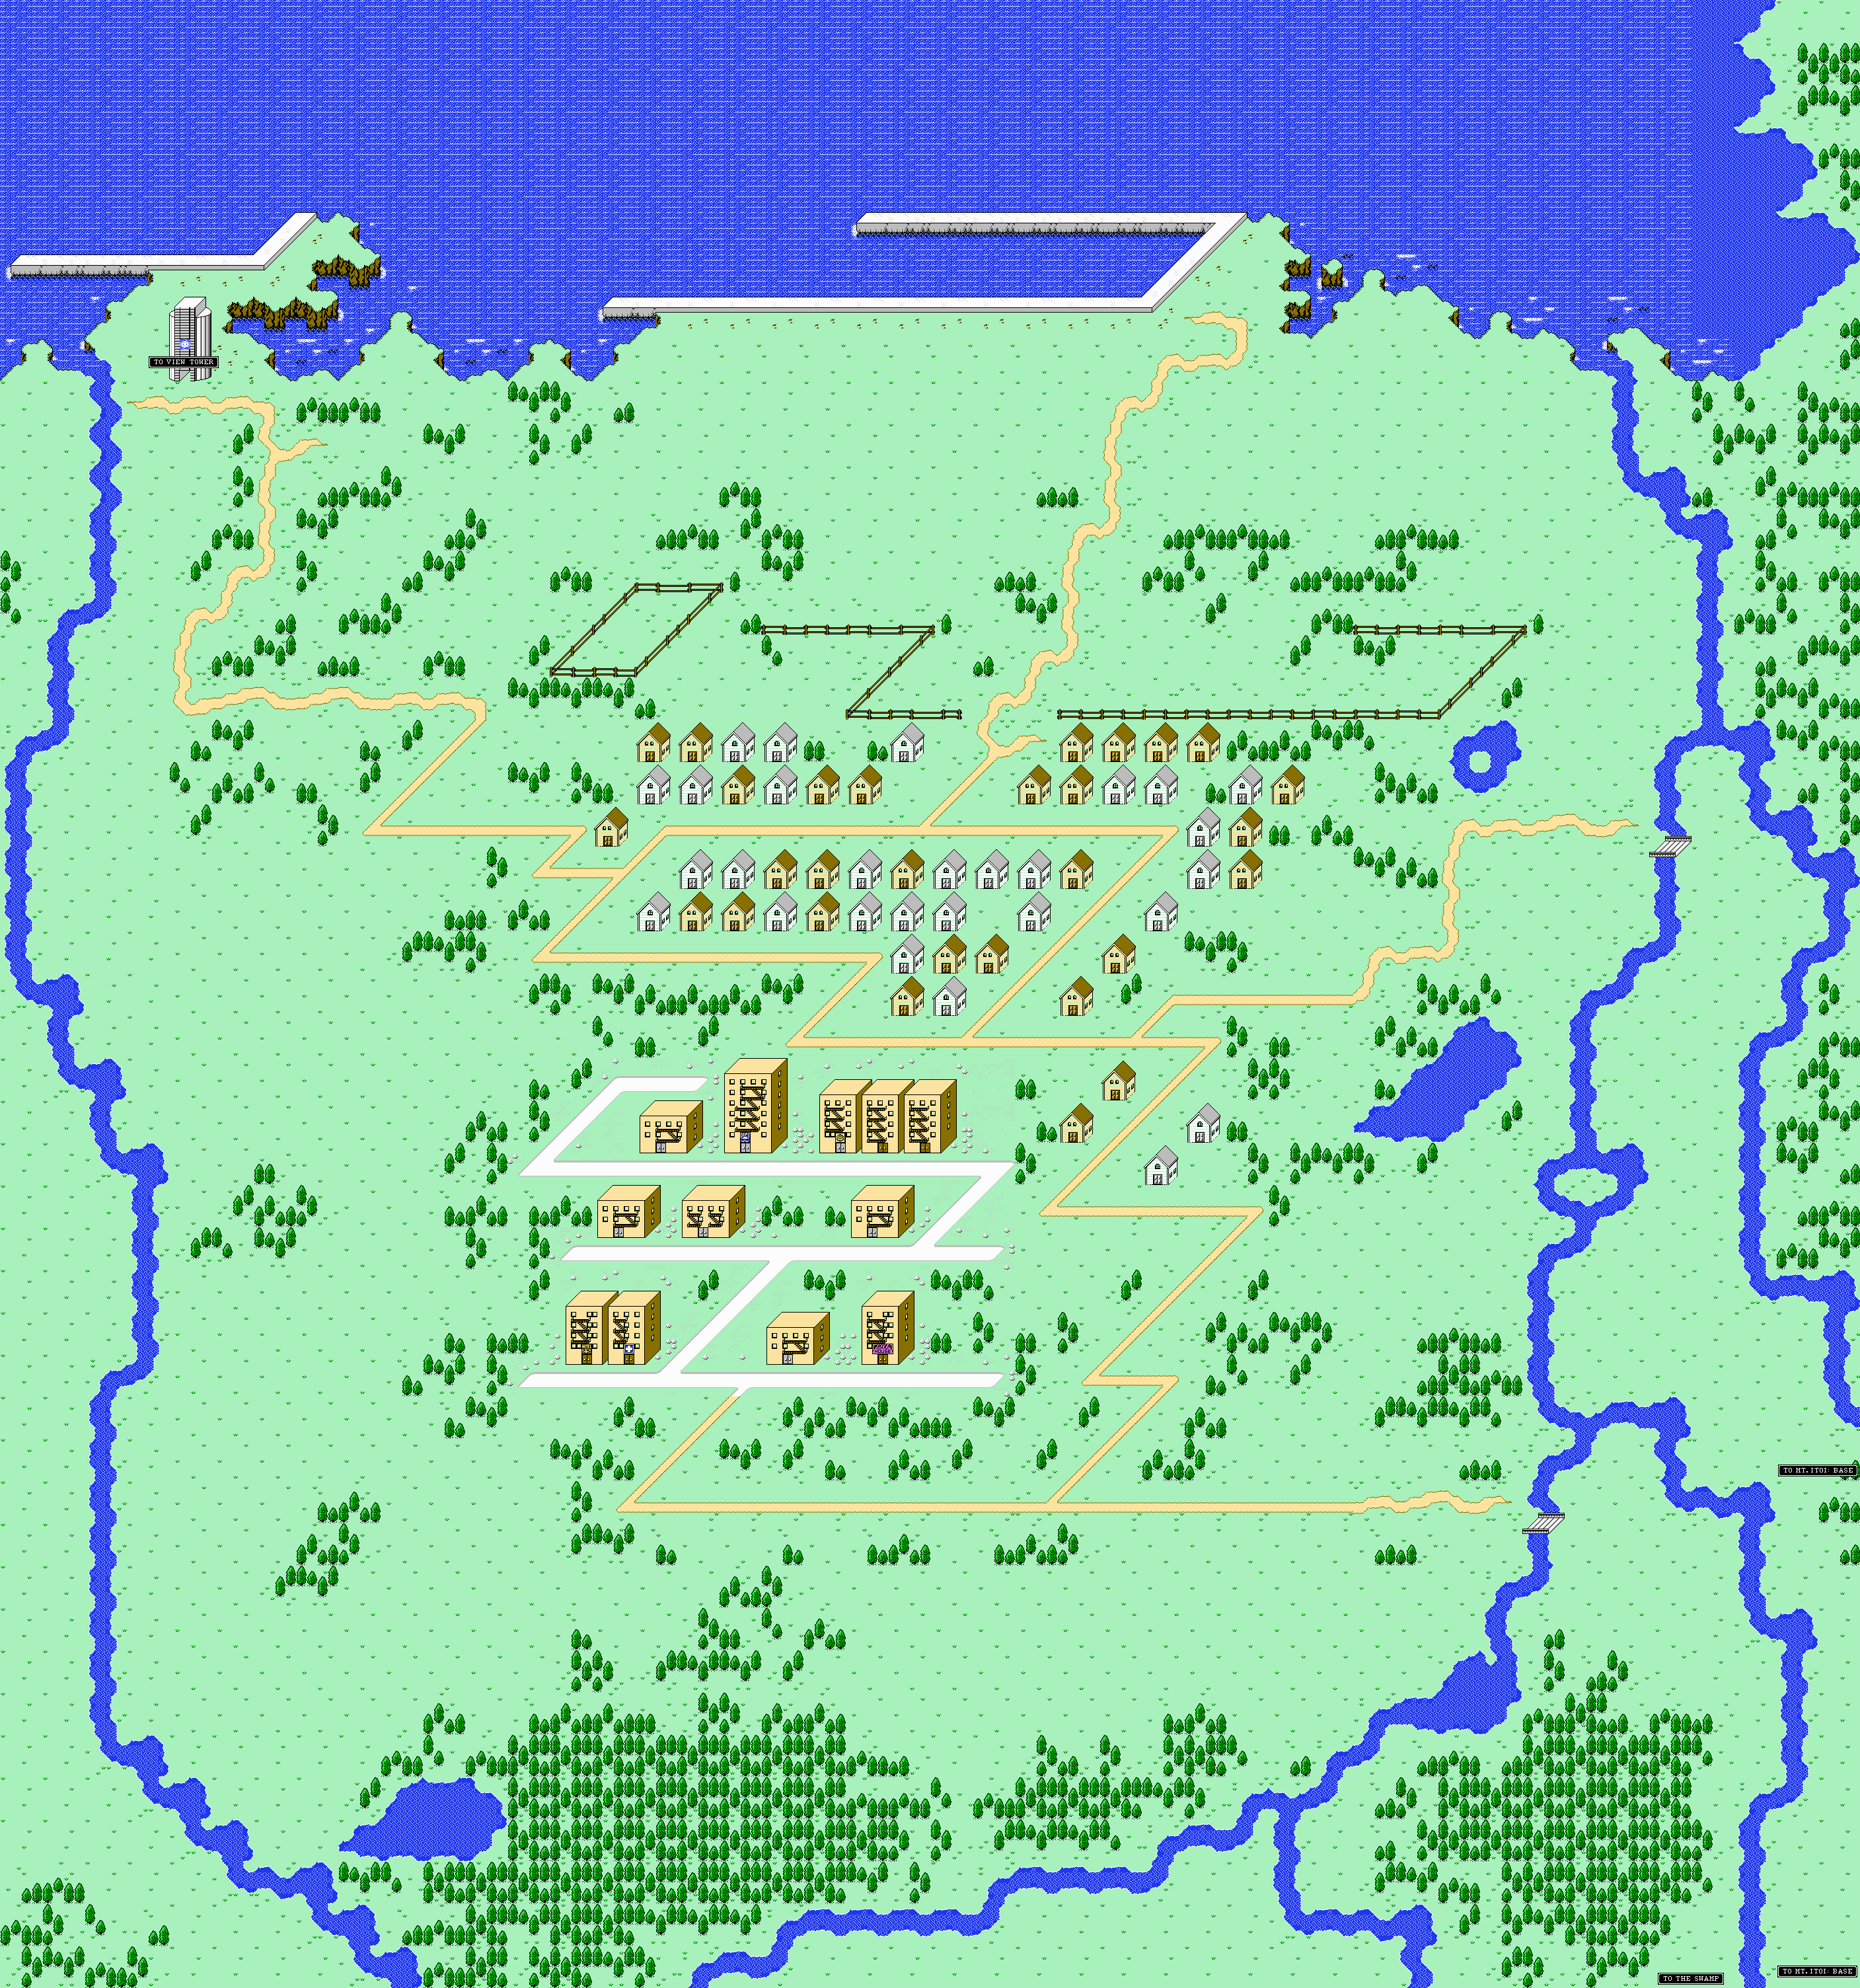 Starmen.Net EarthBound Zero Walkthrough: Game Maps on made up maps, snes maps, google maps, cool site maps, metro bus houston tx maps, fictional maps, epic d d maps, interesting maps, cartography maps, mmo maps, fishing maps, all of westeros maps, dragon warrior monsters 2 maps, jrpg maps, prank maps, bully scholarship edition cheats maps, house maps, simple risk maps, all the locations of the death camp maps, dvd maps,